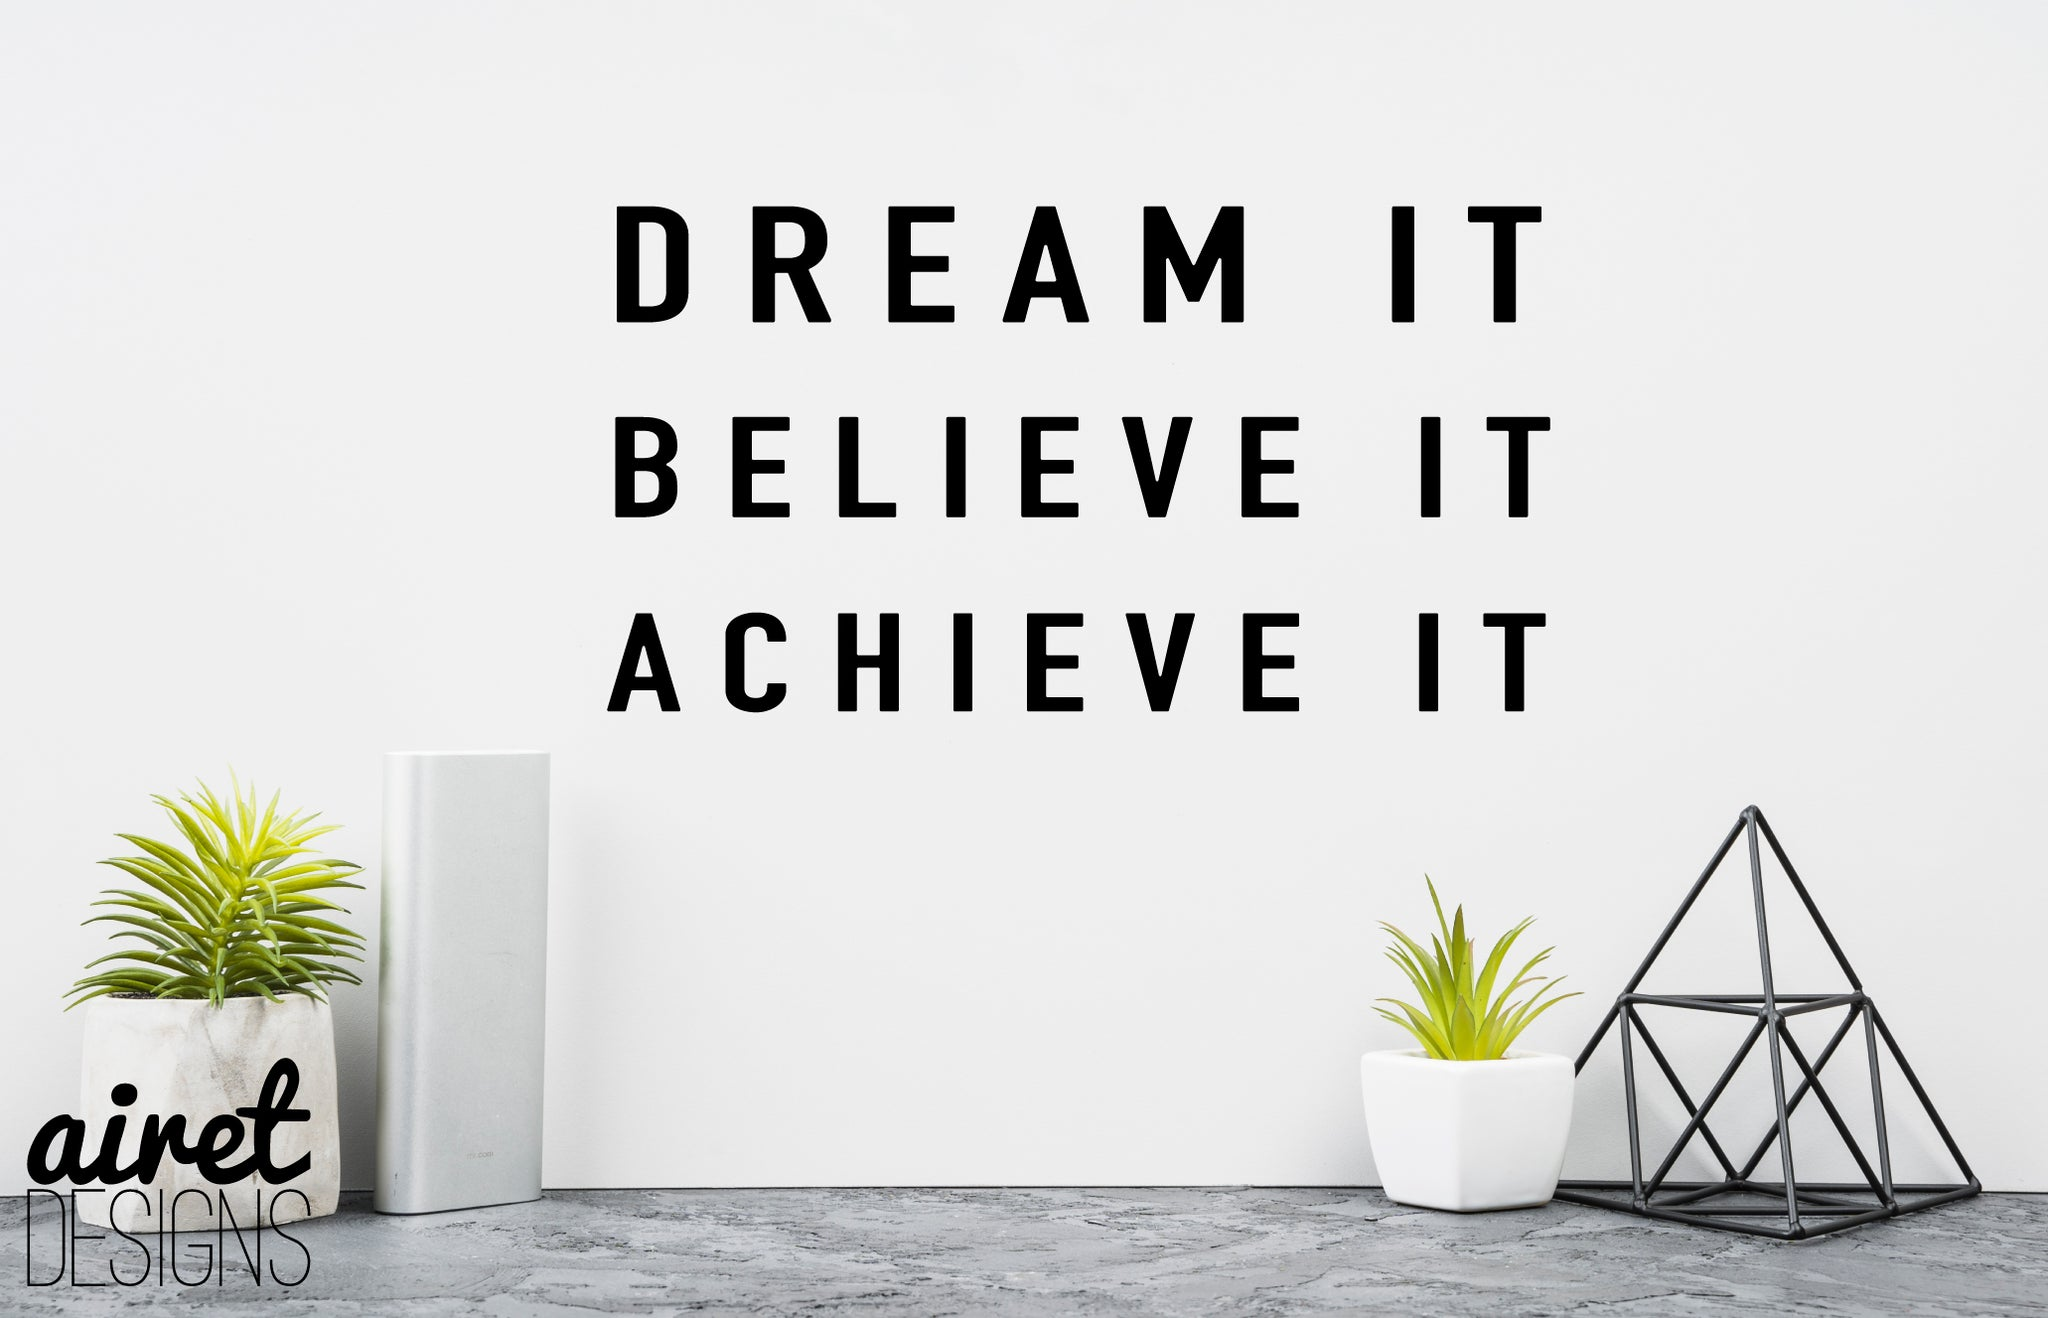 Dream it, Believe it, Achieve it - Vinyl Decal Inspirational Wall Decor Sticker Sign v2